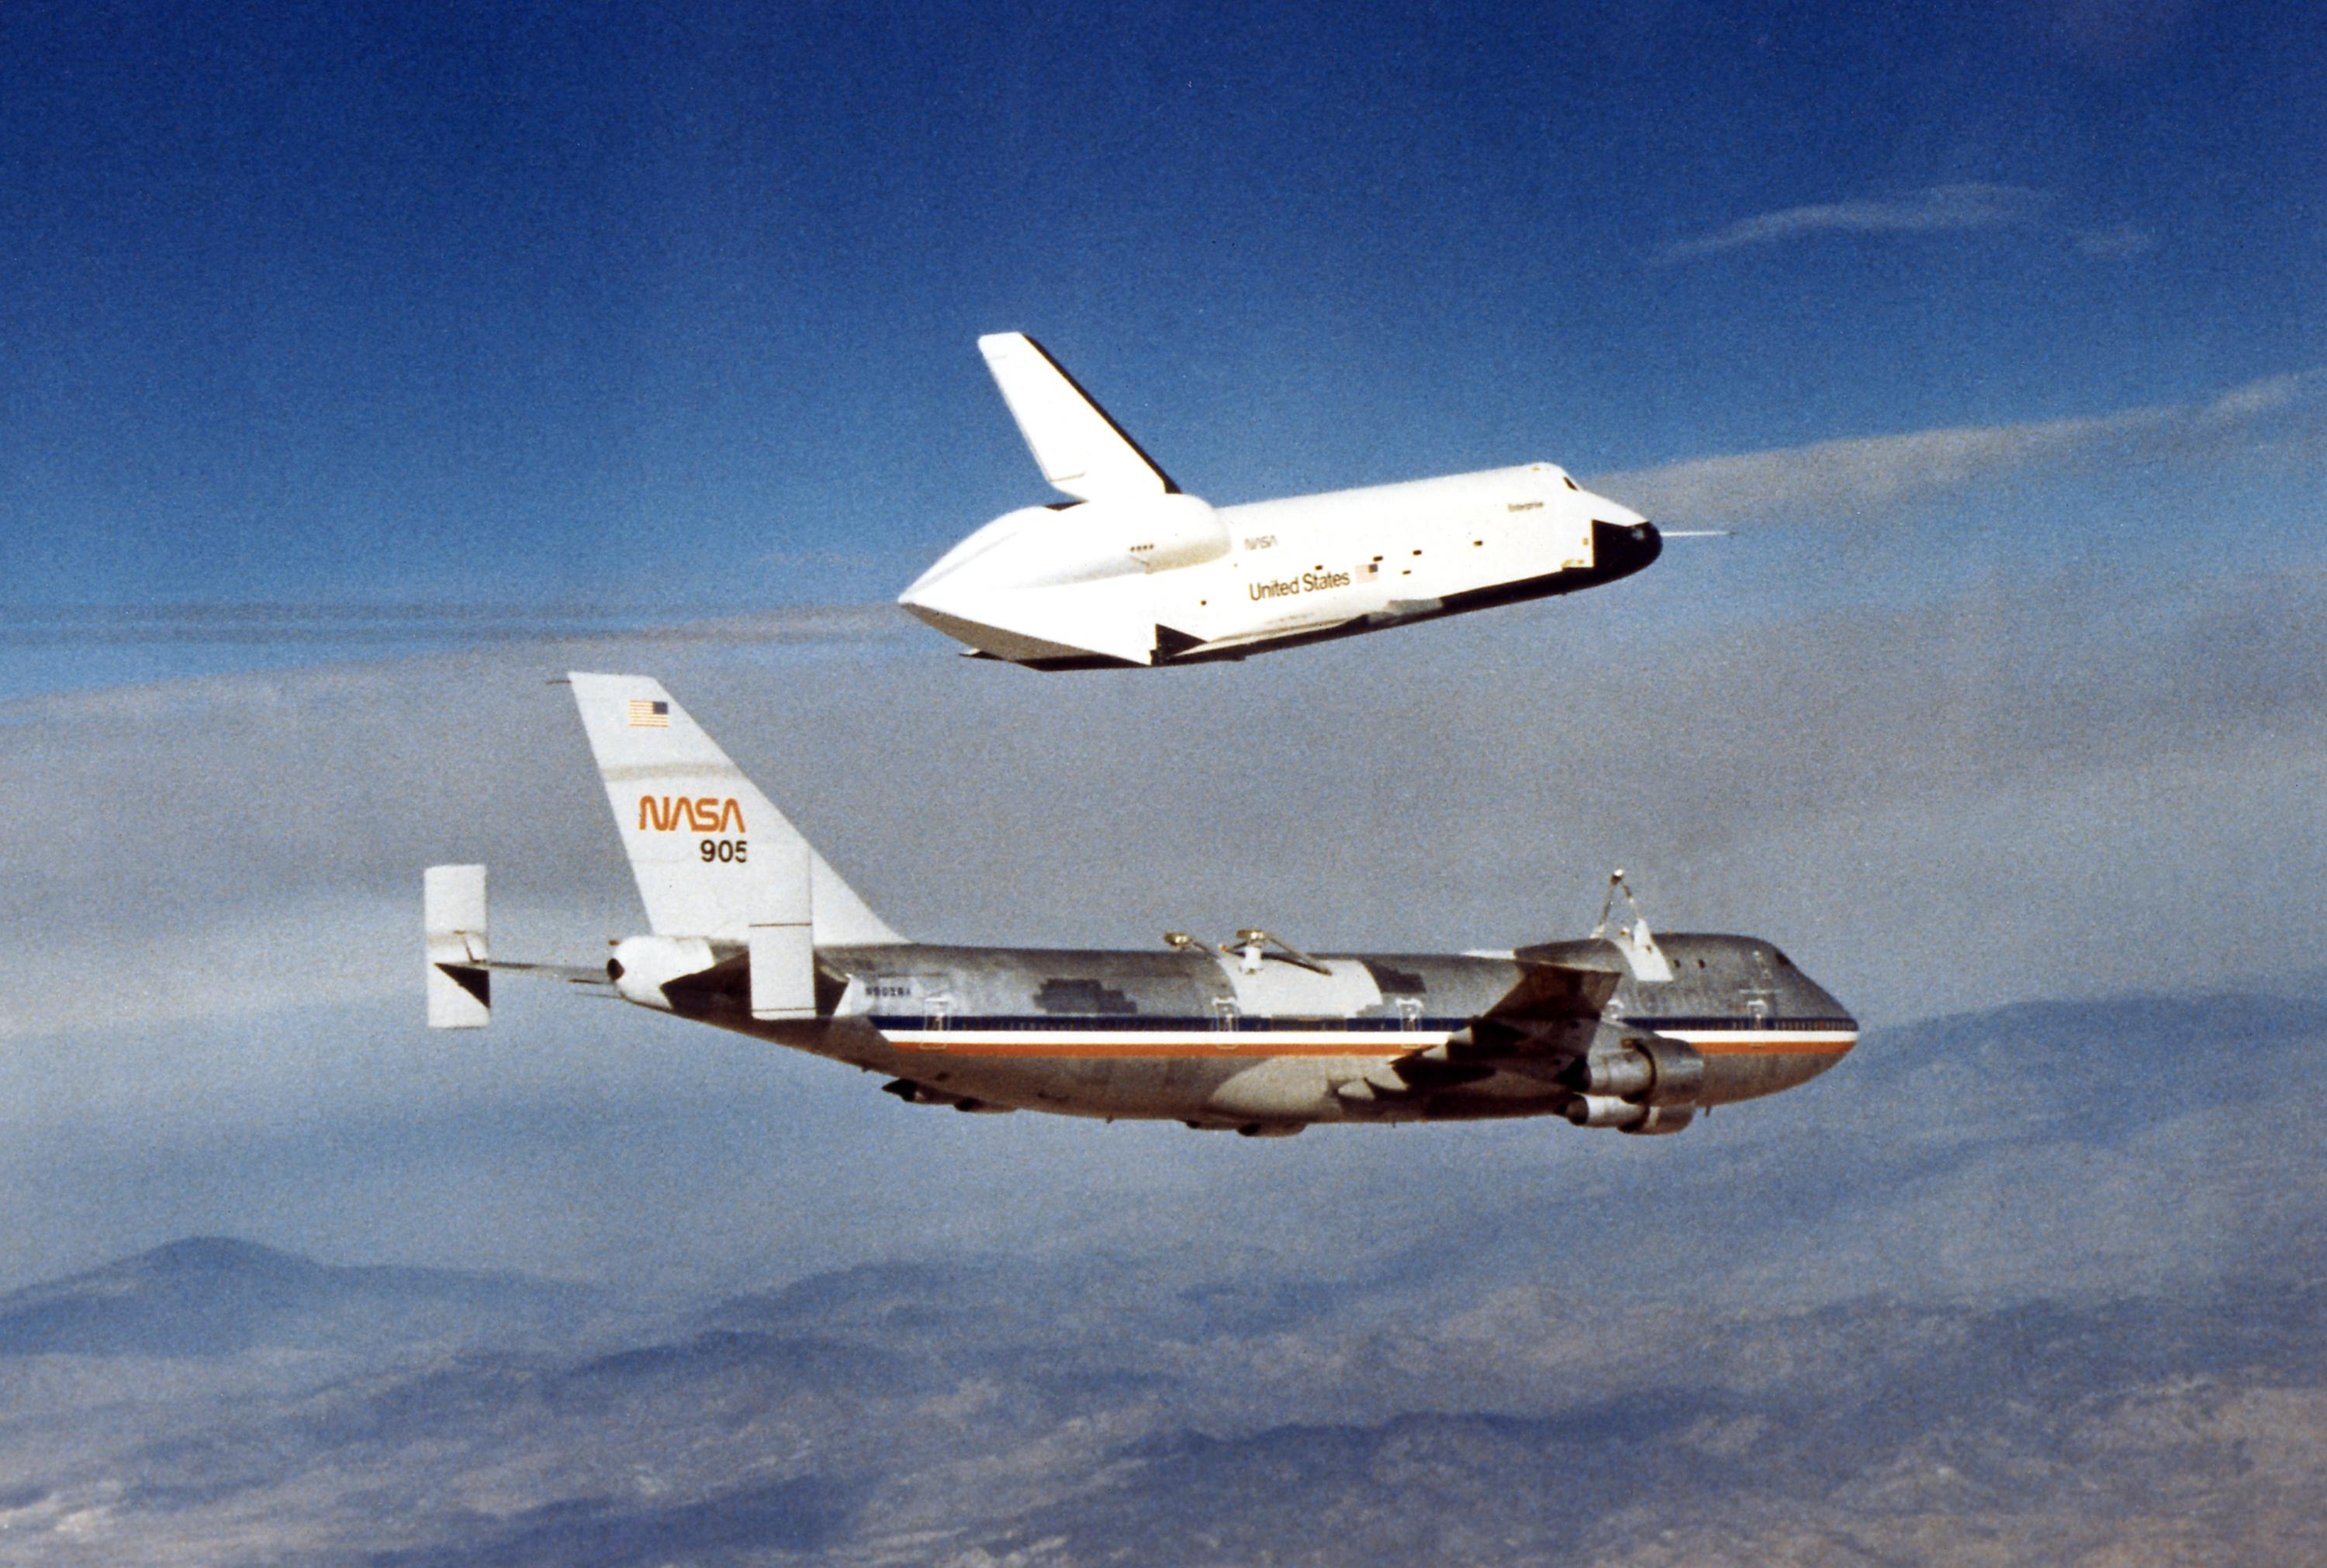 nasa 905 transport - photo #9